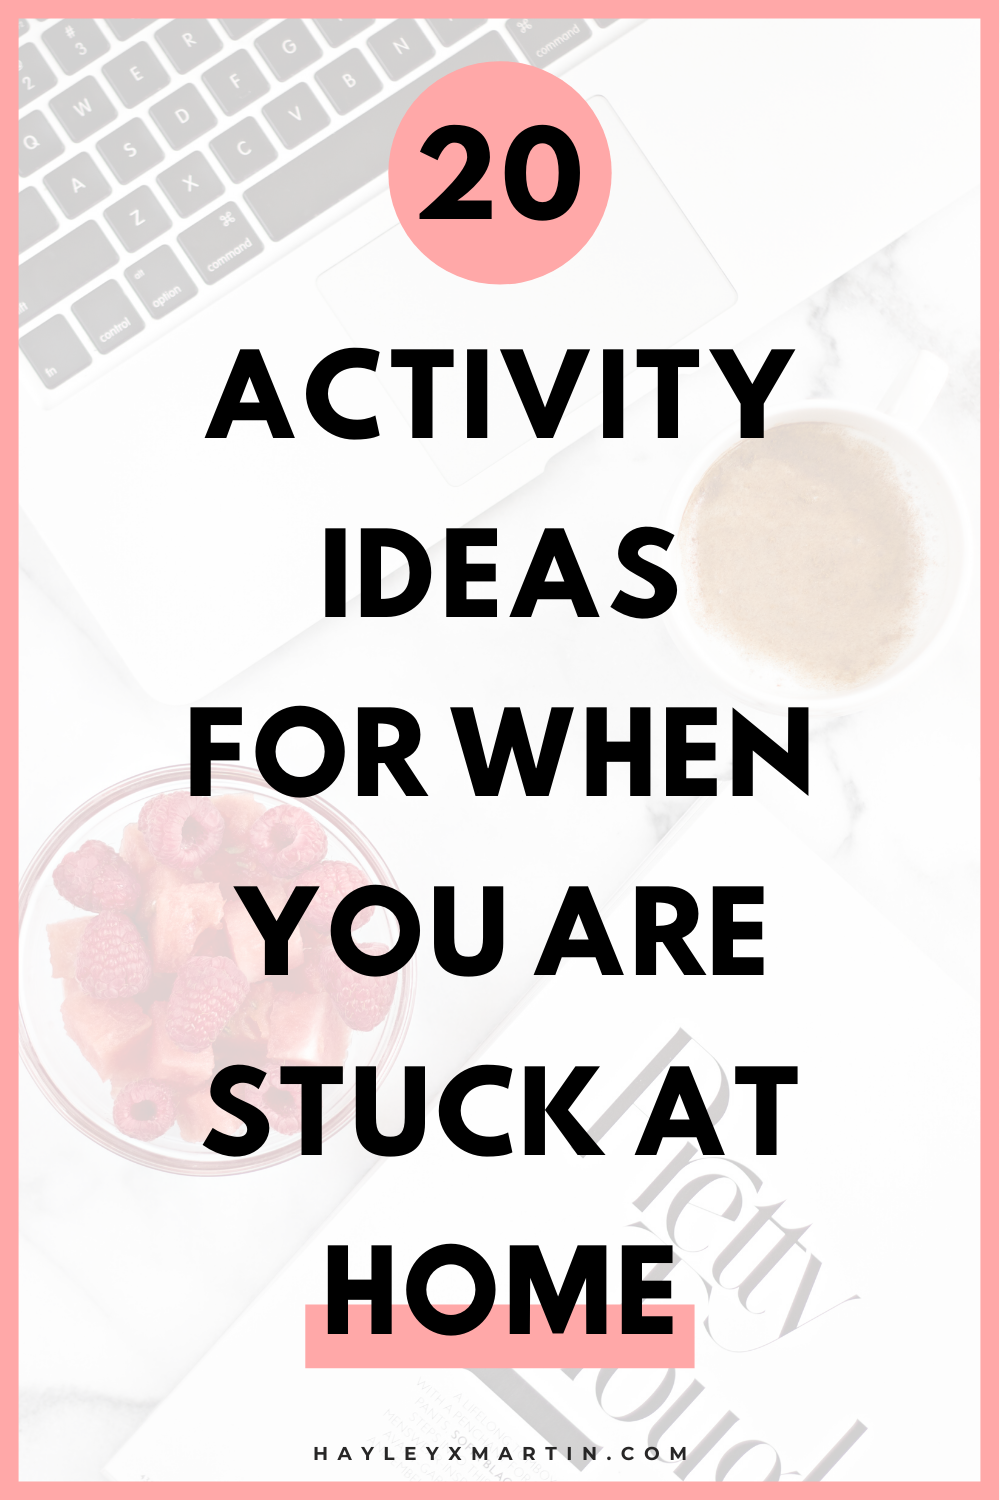 20 ACTIVITY IDEAS FOR WHEN YOU ARE STUCK AT HOME | 20 PRODUCTIVE THINGS TO DO AT HOME | HAYLEYXMARTIN